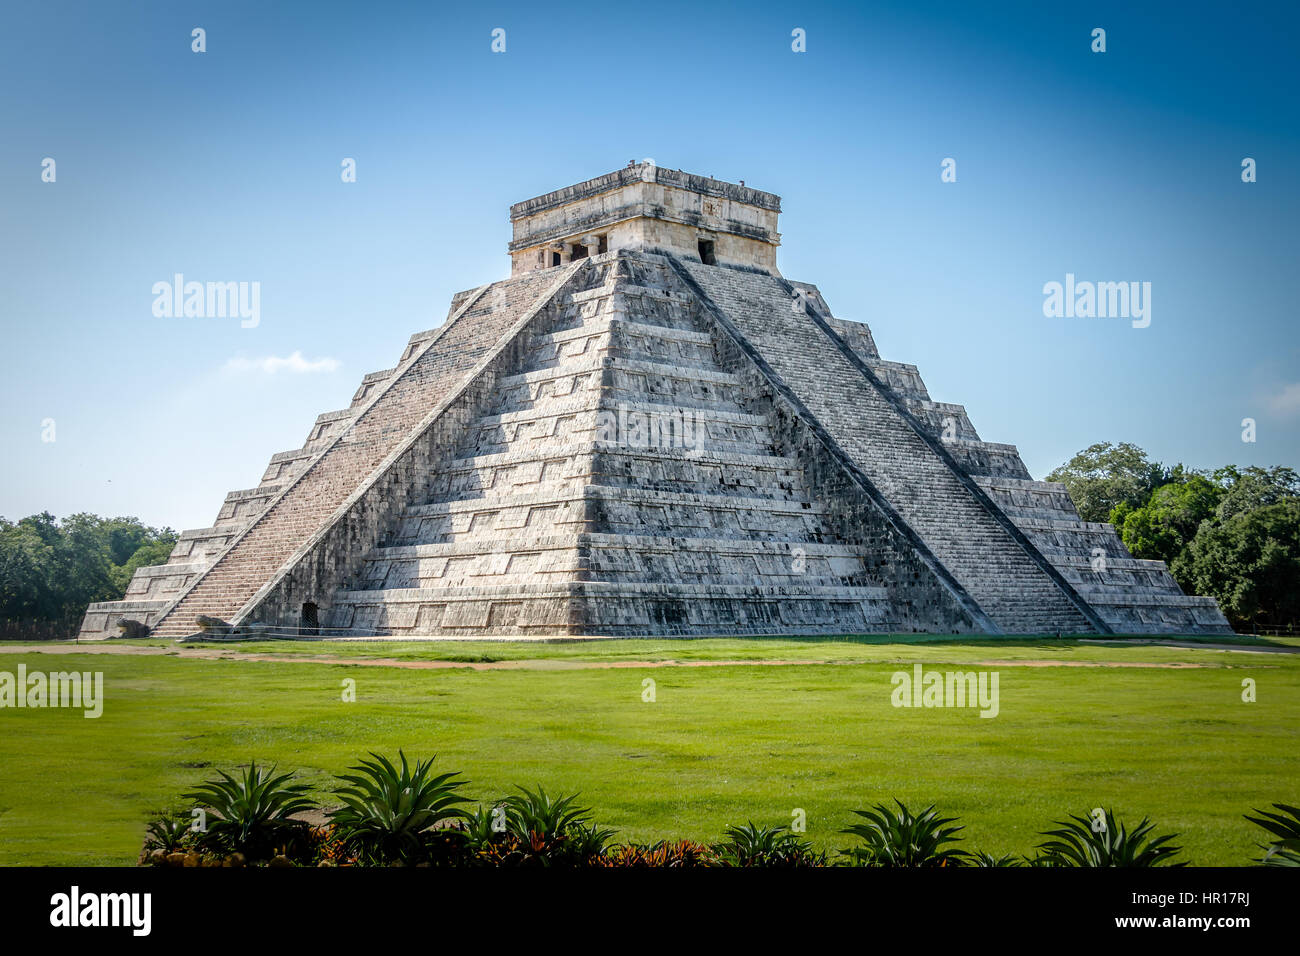 Mayan Temple pyramid of Kukulkan - Chichen Itza, Yucatan, Mexico - Stock Image